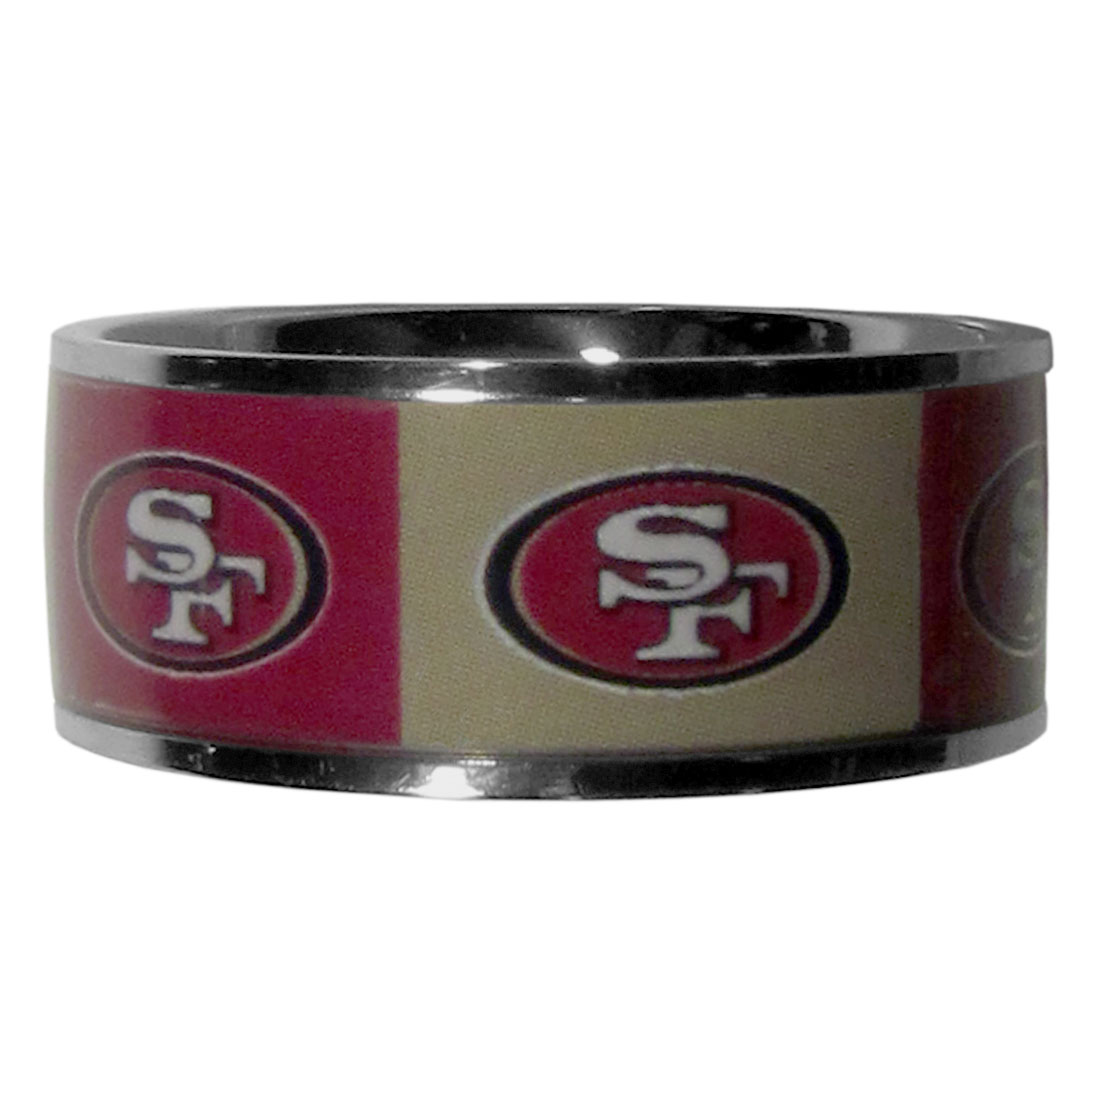 San Francisco 49ers Steel Inlaid Ring Size 12 - Our high-quality San Francisco 49ers stainless steel ring is a classy way to show off your team pride. The ring features crisp, inlaid team graphics.